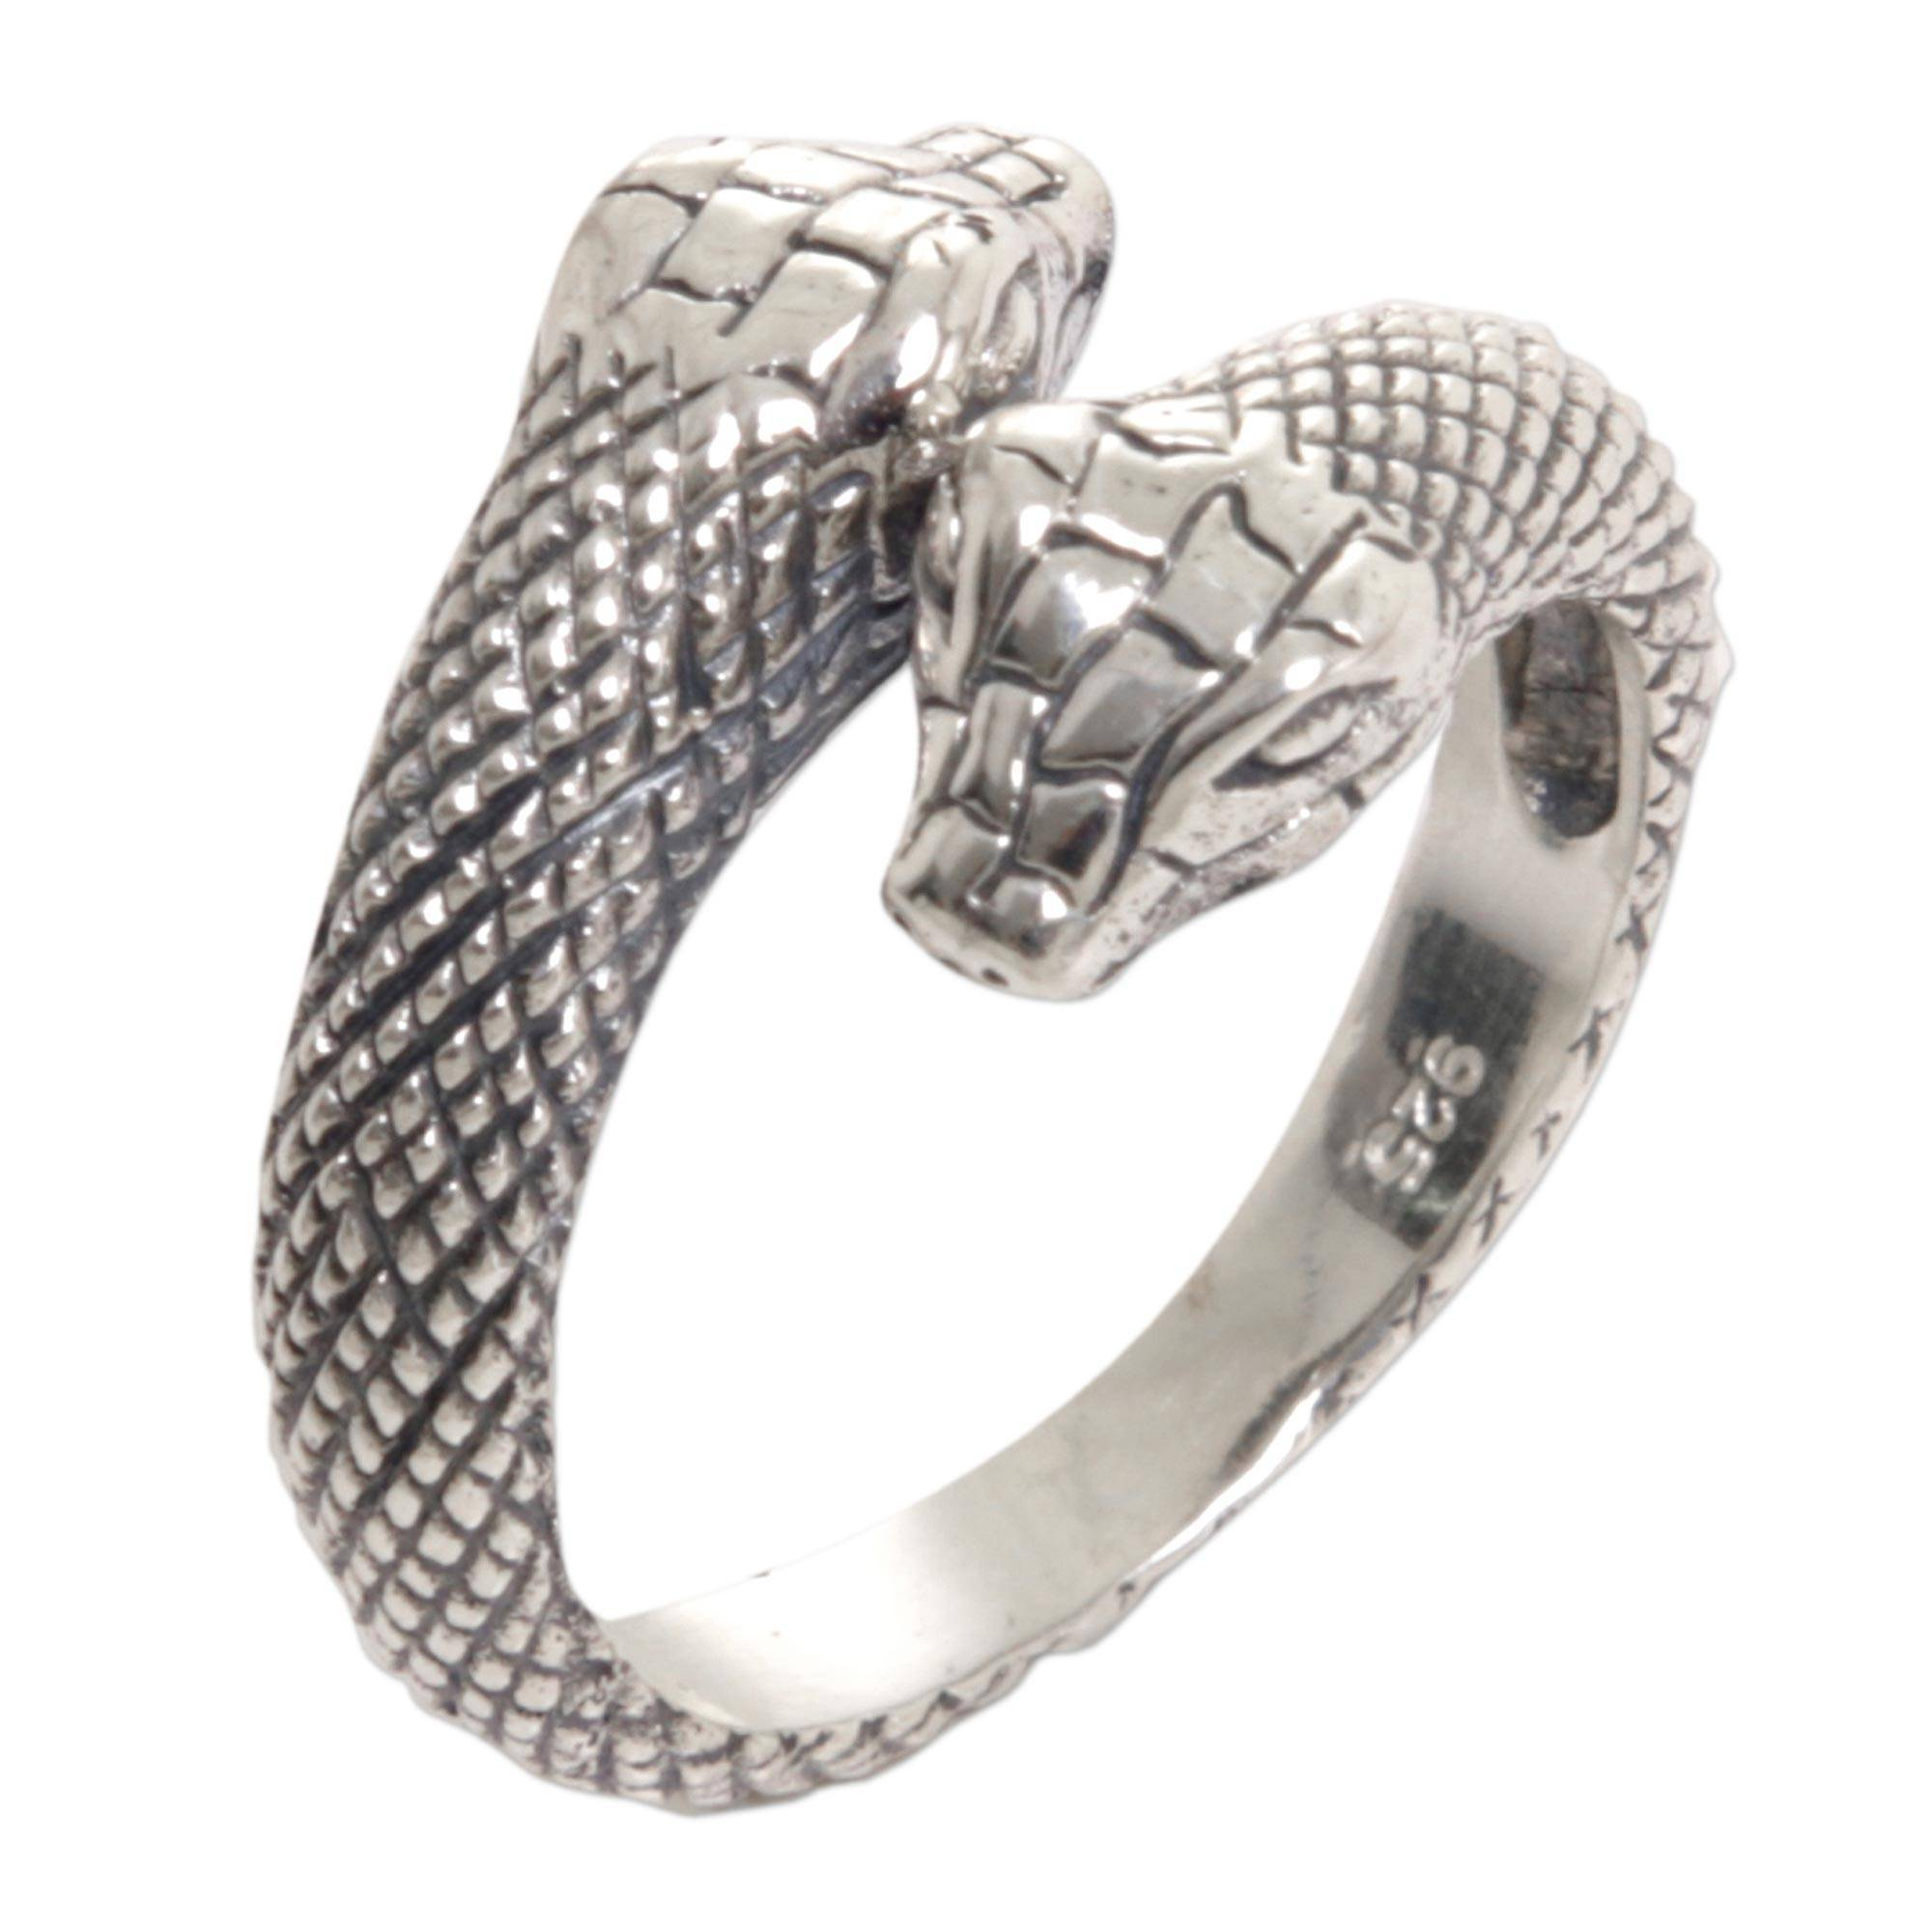 mind snake rings state ring curated sarah web by jane magazine products serpent c of wylde wilde